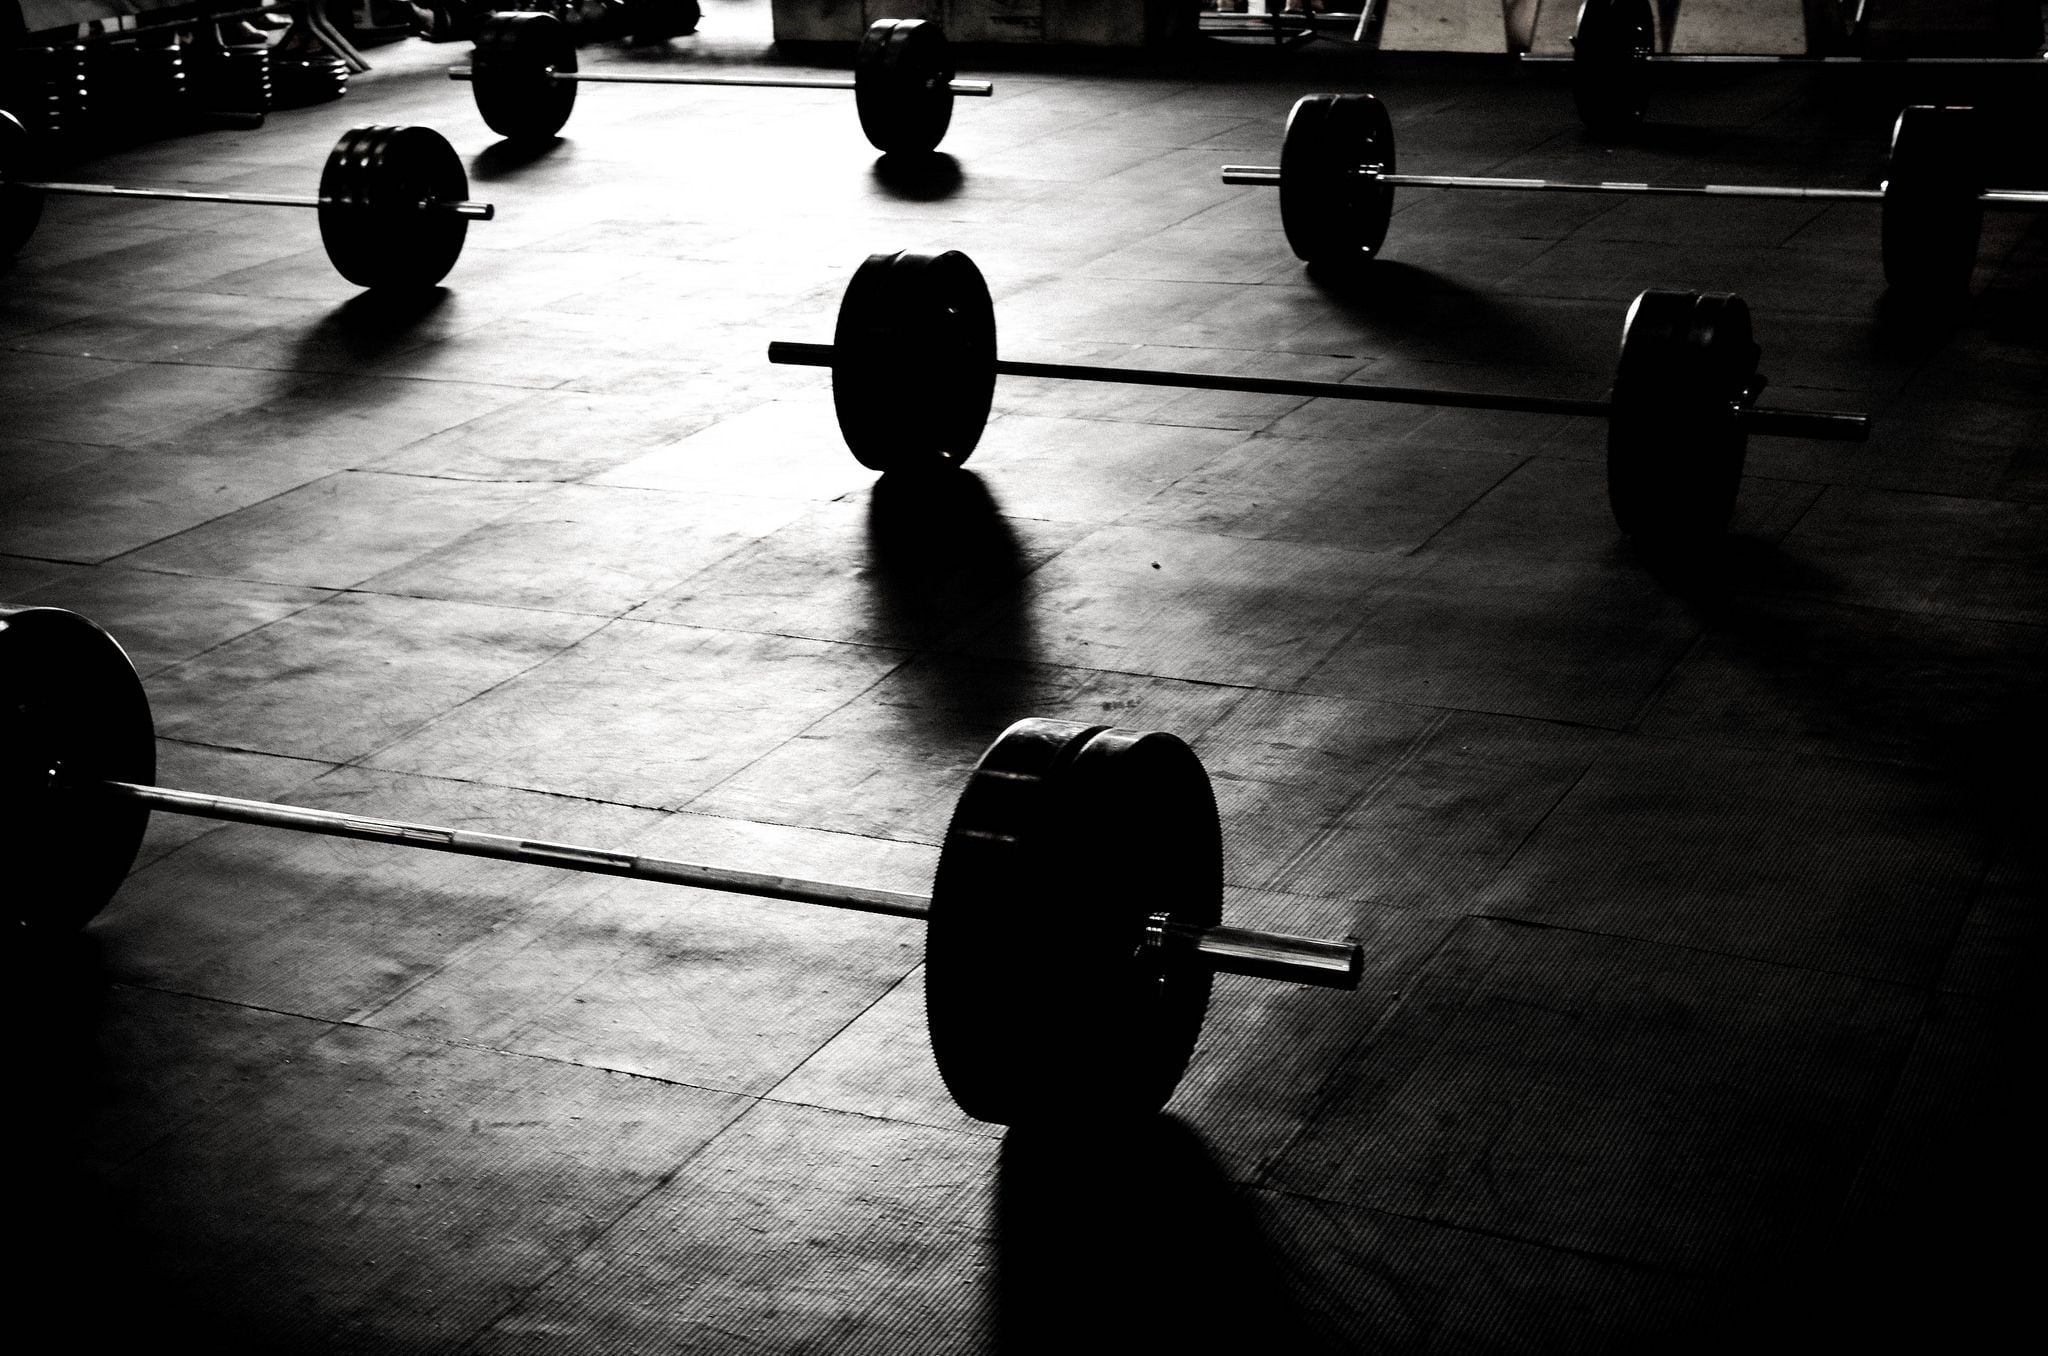 Barbell High Quality wallpapers